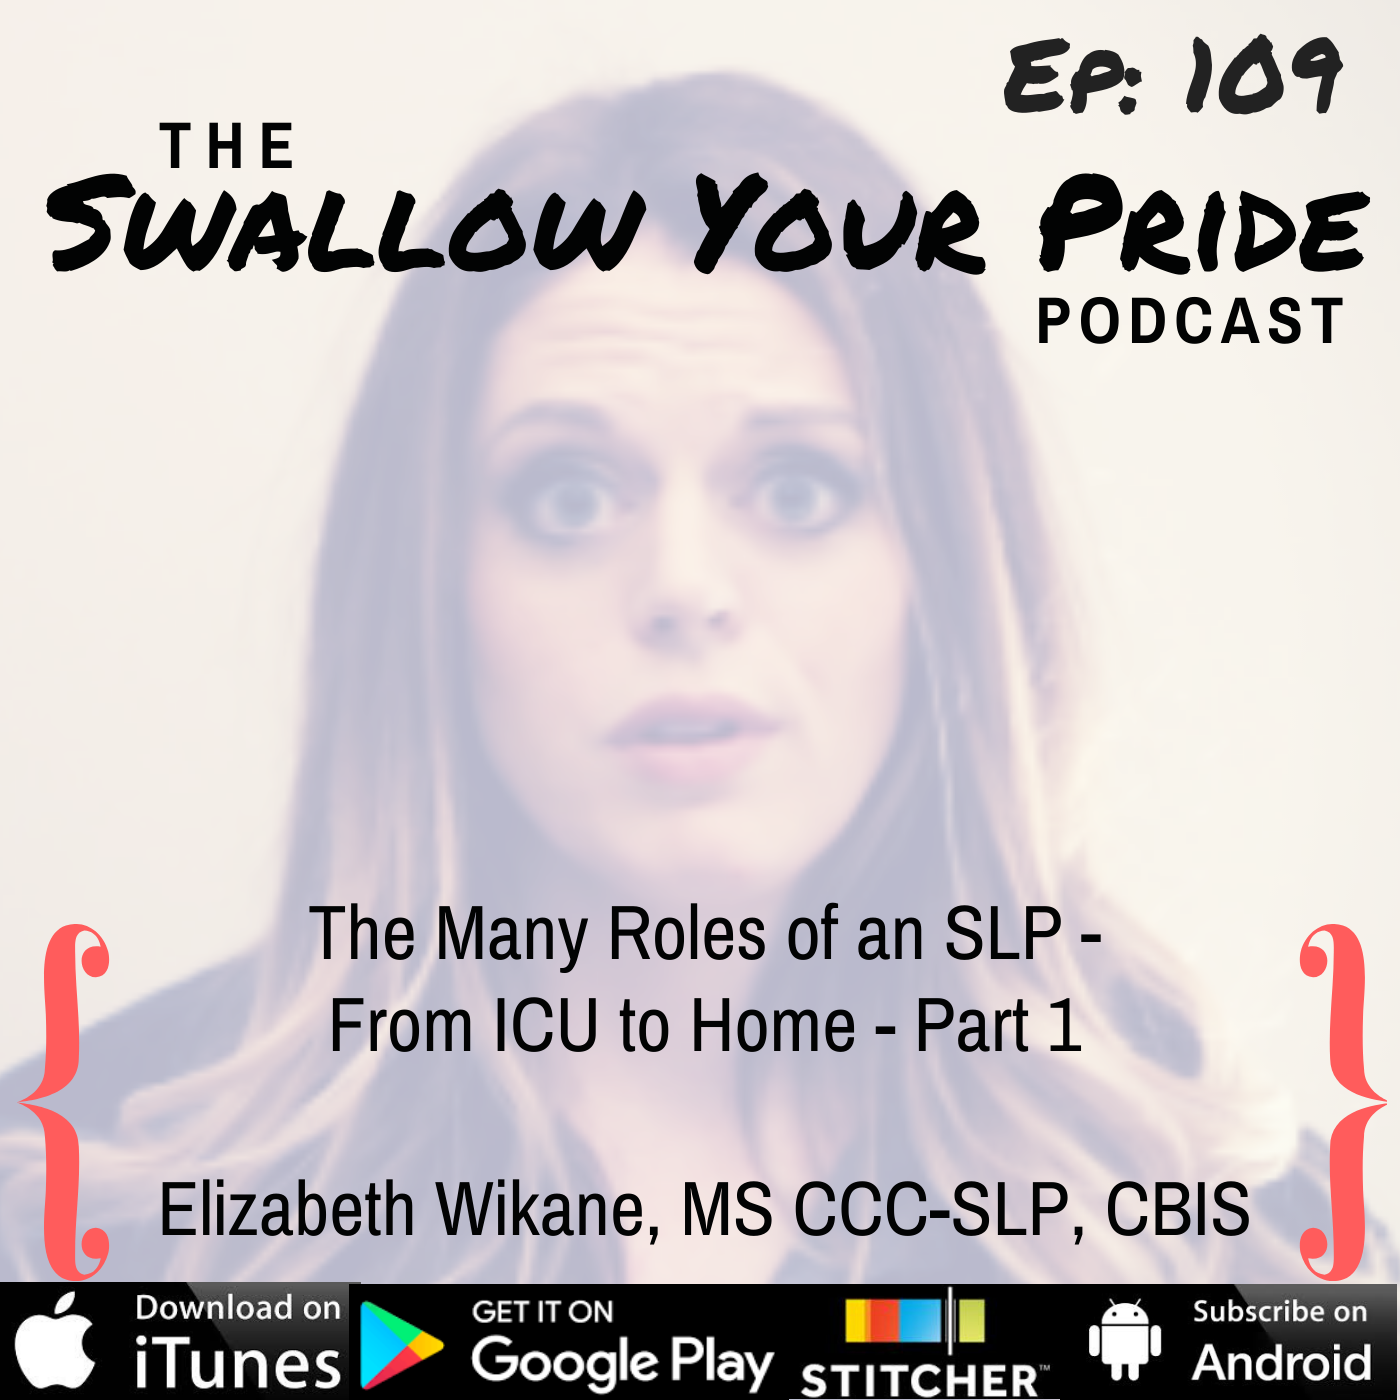 109 – Elizabeth Wikane, MS CCC-SLP, CBIS – The Many Roles of an SLP – From ICU to Home